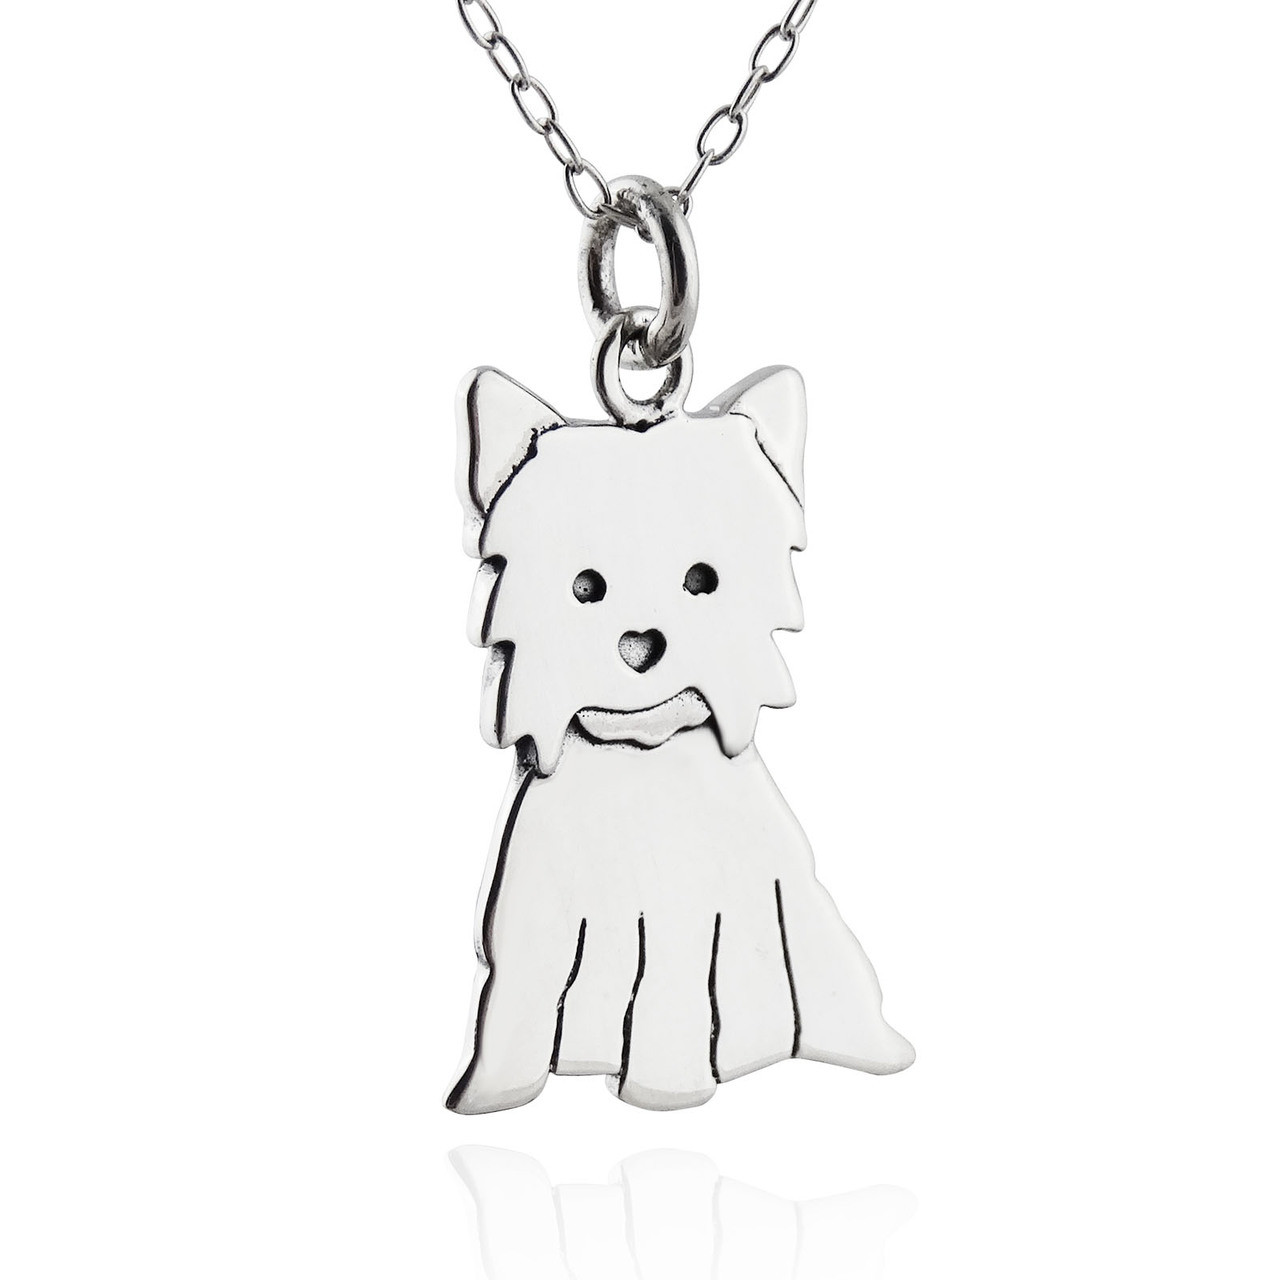 Yorkshire terrier or yorkie necklace sterling silver yorkshire terrier or yorkie necklace sterling silver aloadofball Gallery